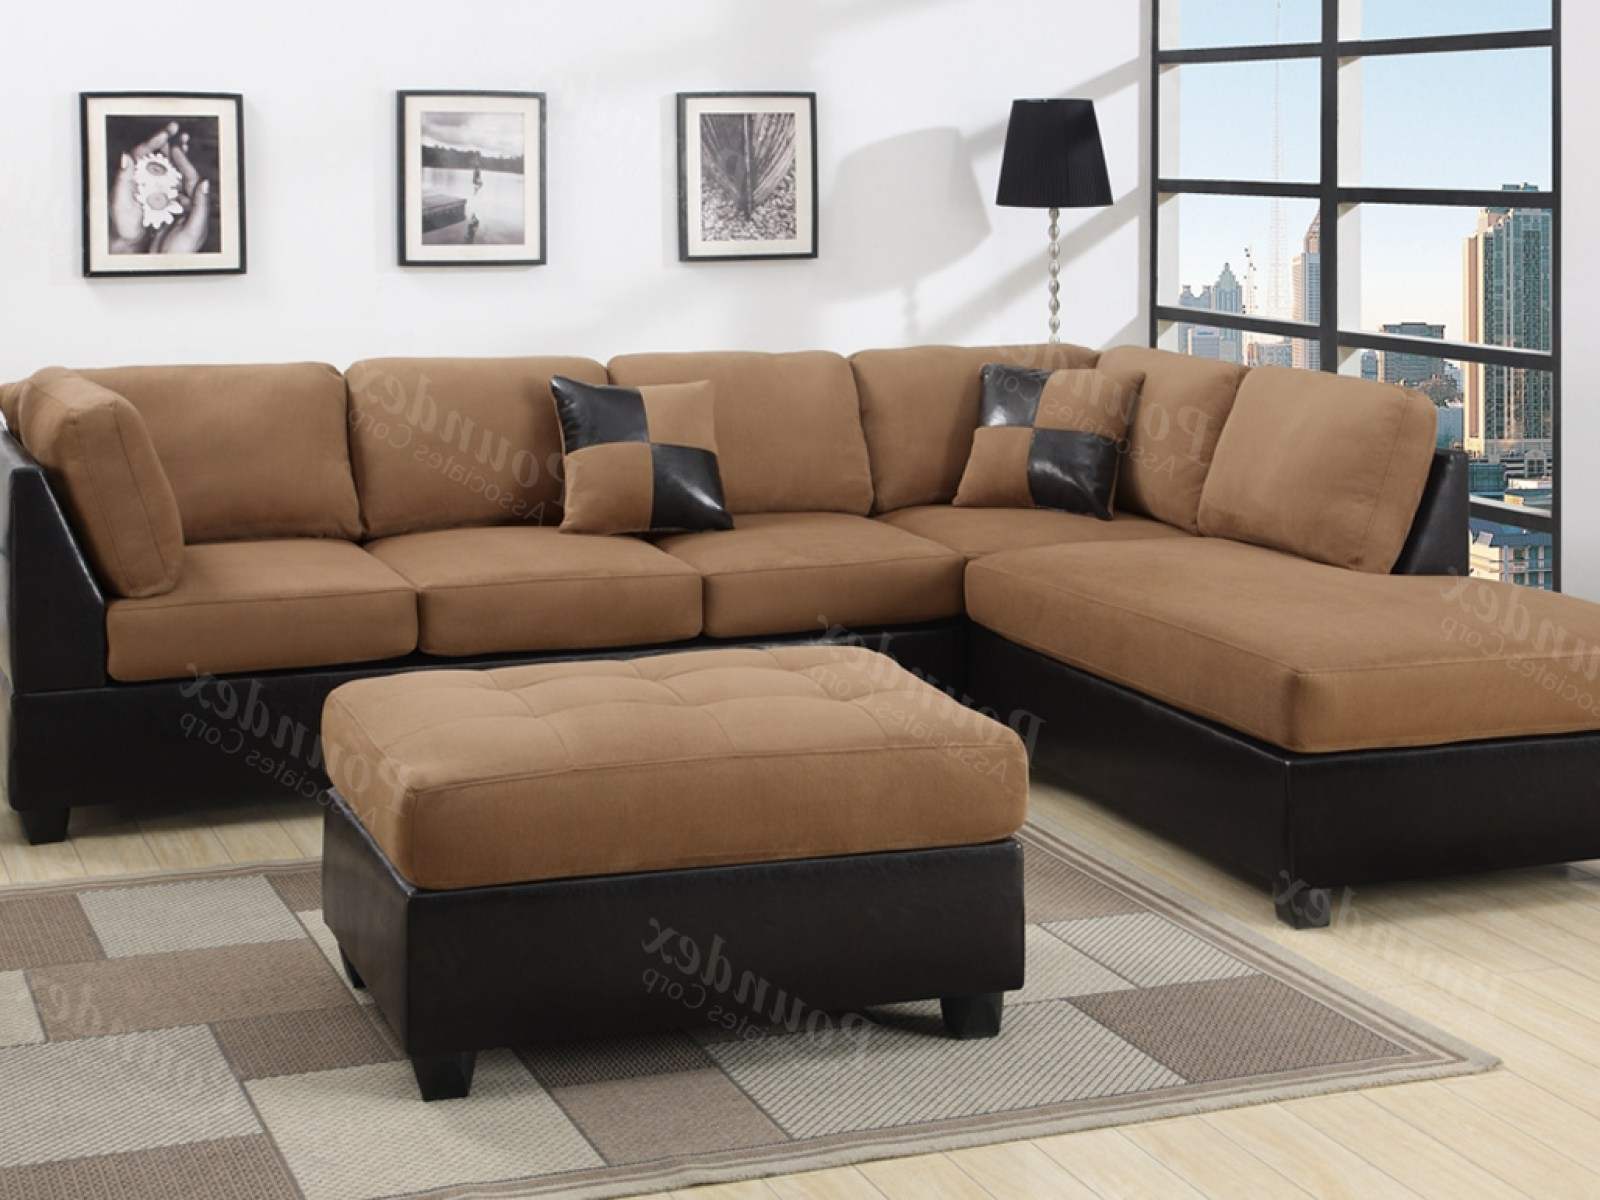 Sectional Sofas That Can Be Rearranged Regarding Most Popular ▻ Sofa : 15 3058702 Poster P 1 A Modular Sofa That Can Rearrange (View 9 of 15)